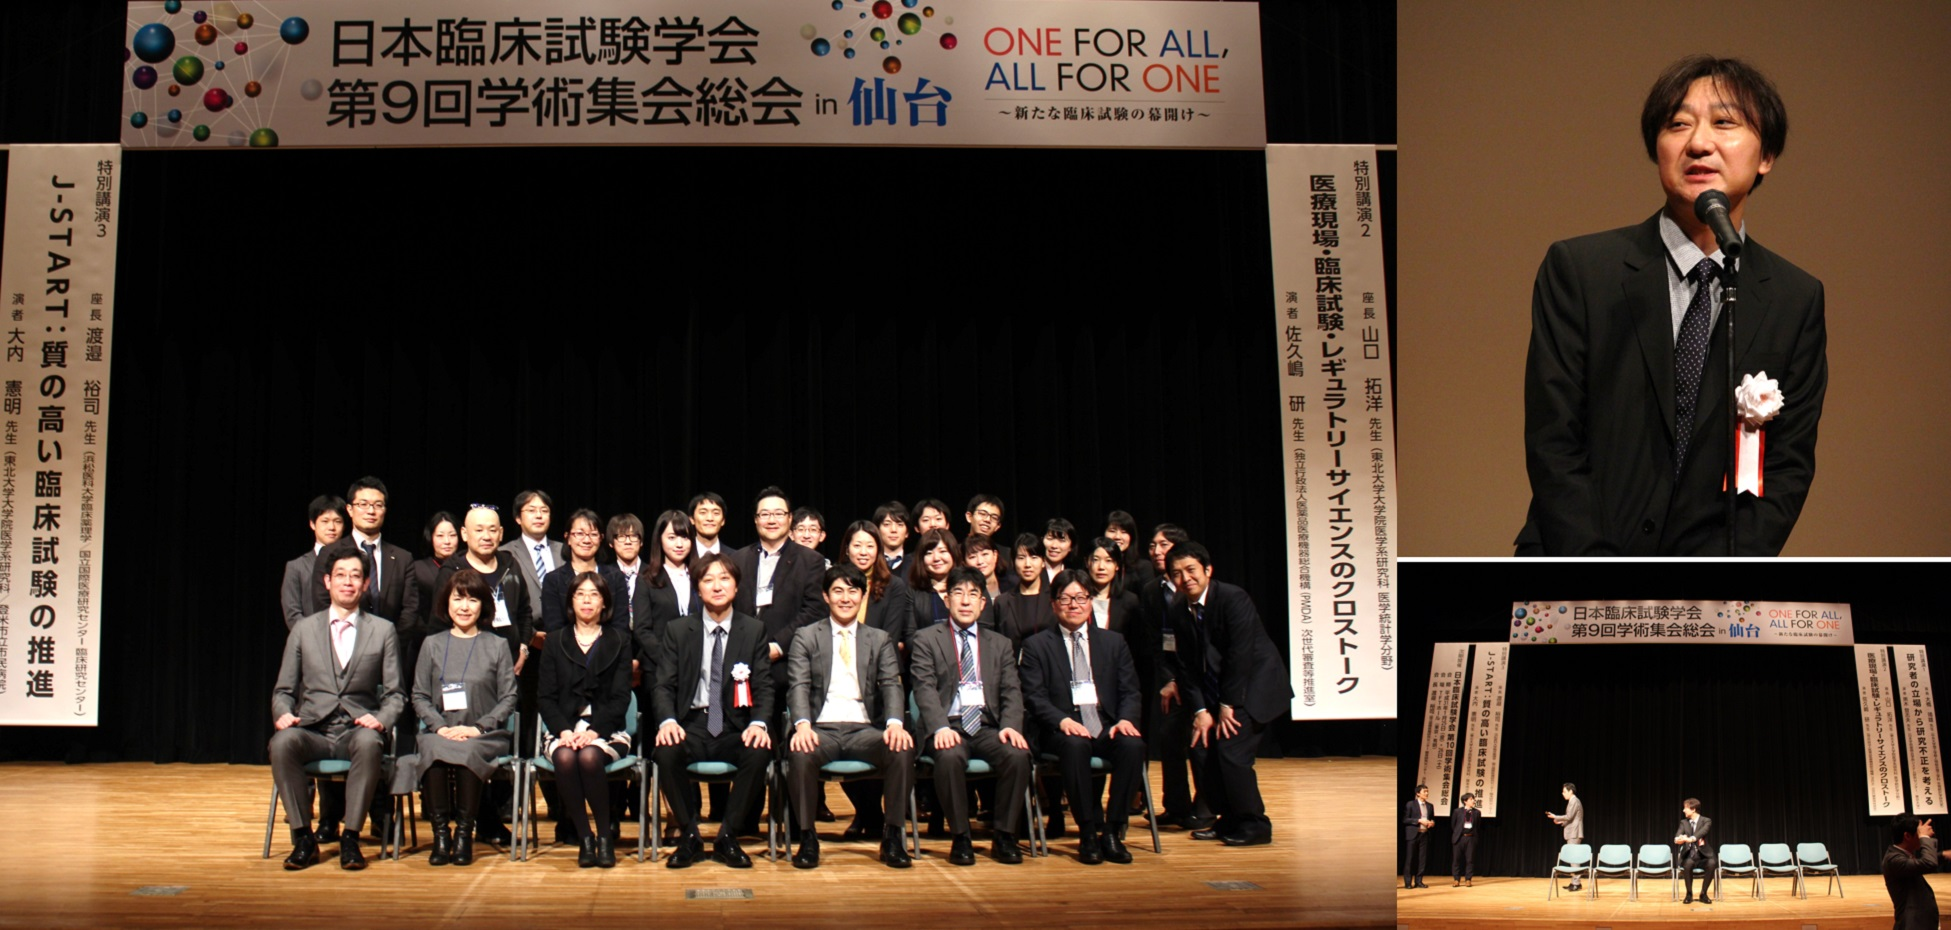 JSCTR2018in仙台(2018.2.23-24)No.5